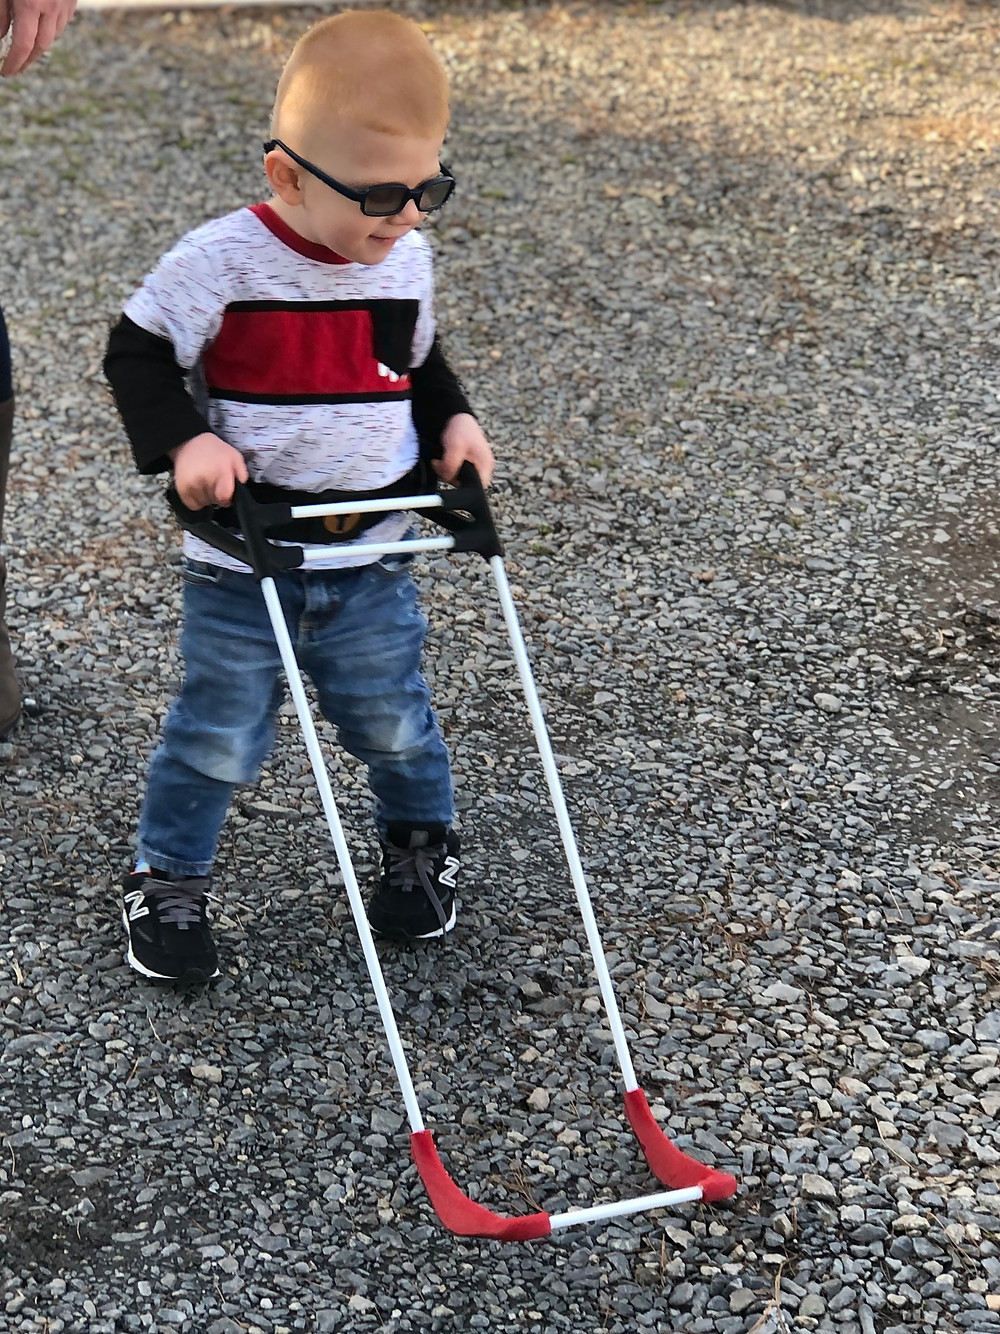 three year old boy walks on packed gravel wearing belt cane, one hand on either grip. Smiles.